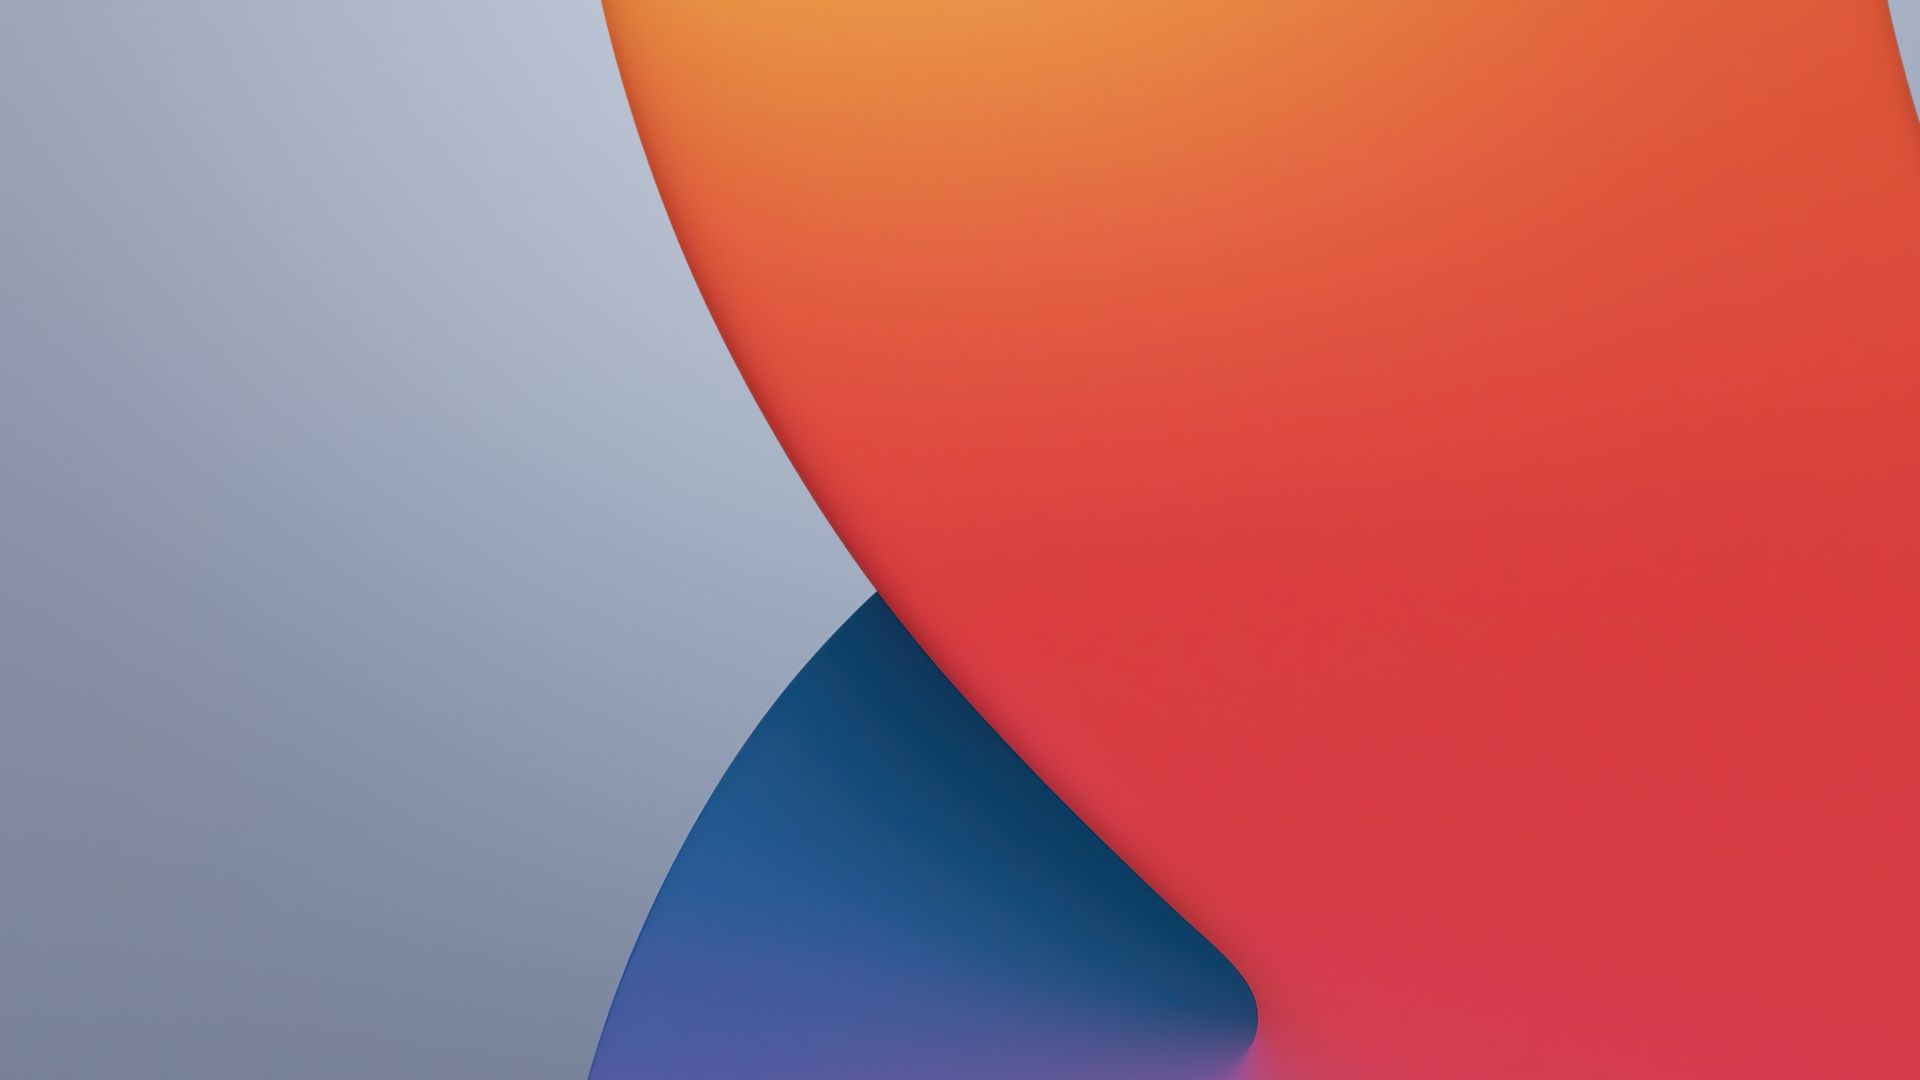 Wallpaper Ios 14 Ipados 14 Abstract Wwdc 2020 4k Os 22650